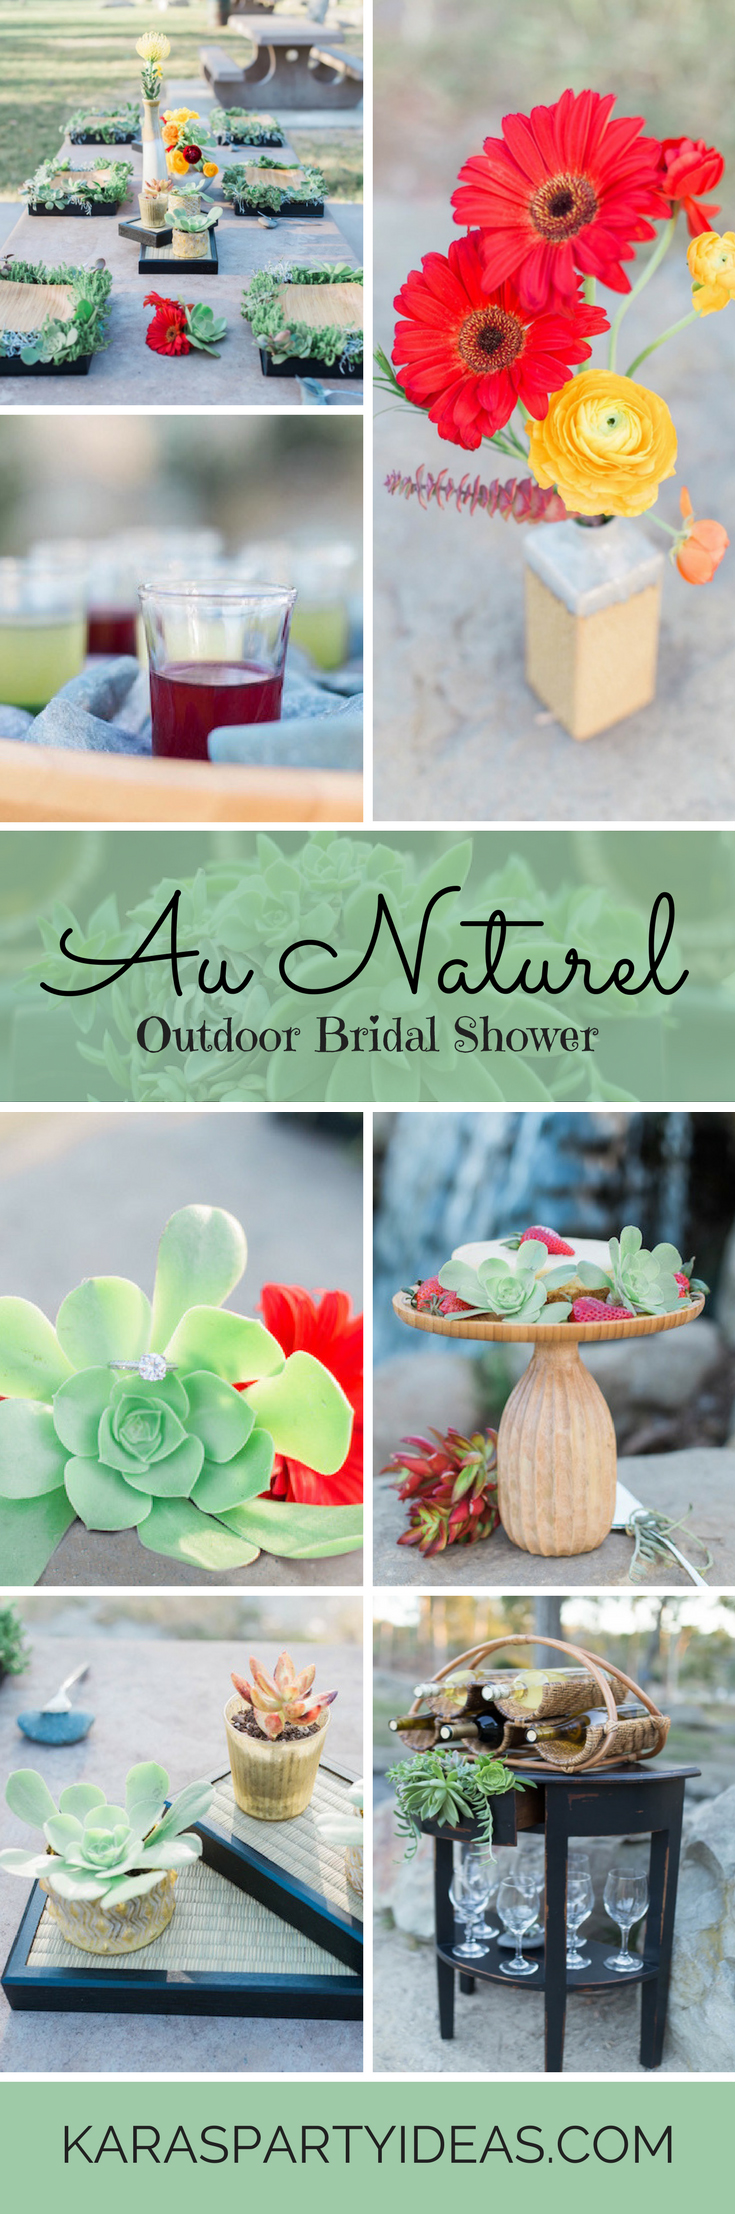 """Au Naturel"" Outdoor Bridal Shower via Kara's Party Ideas"